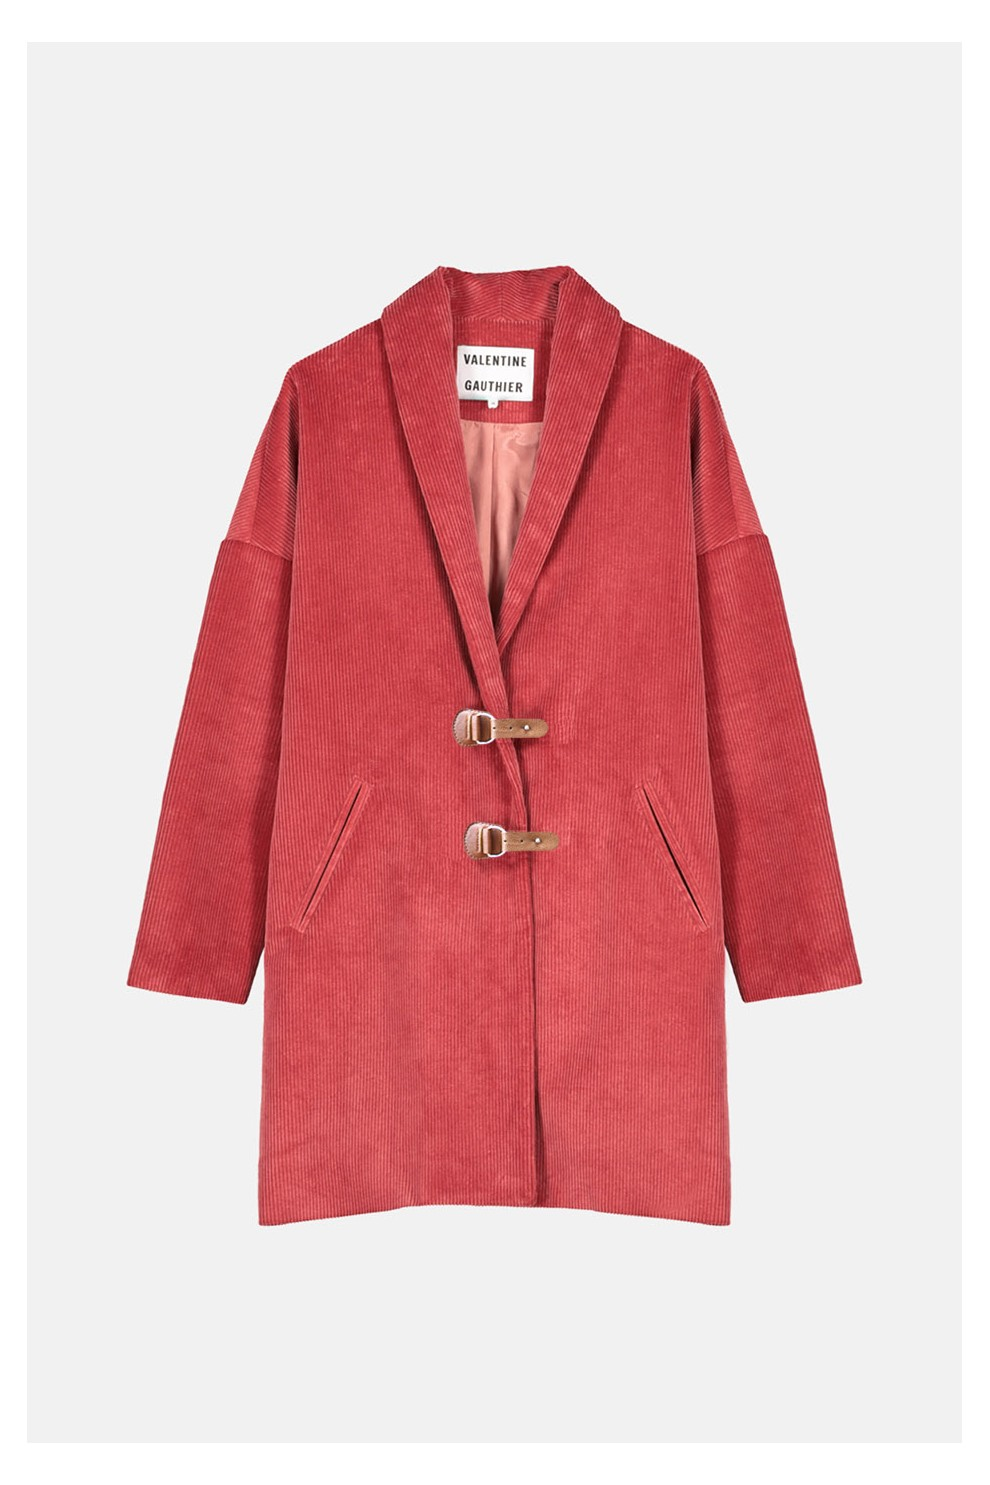 Camellia colored corduroy coat from Valentine Gauthier